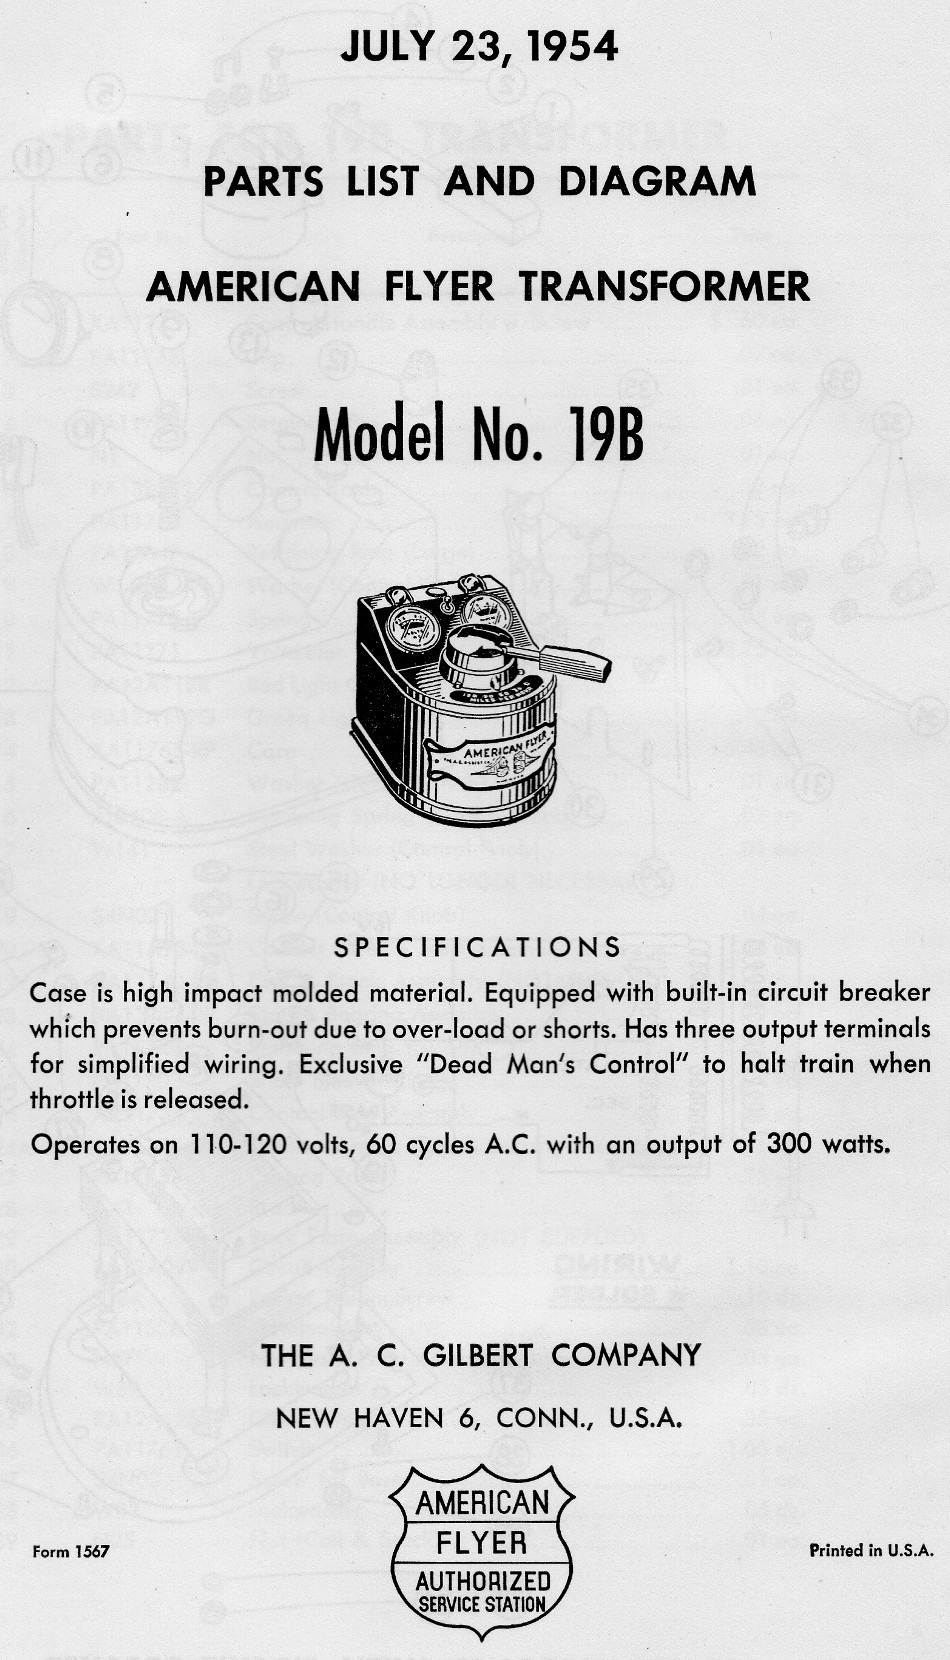 American Flyer Transformer 19B Parts List and Diagram - Page 1